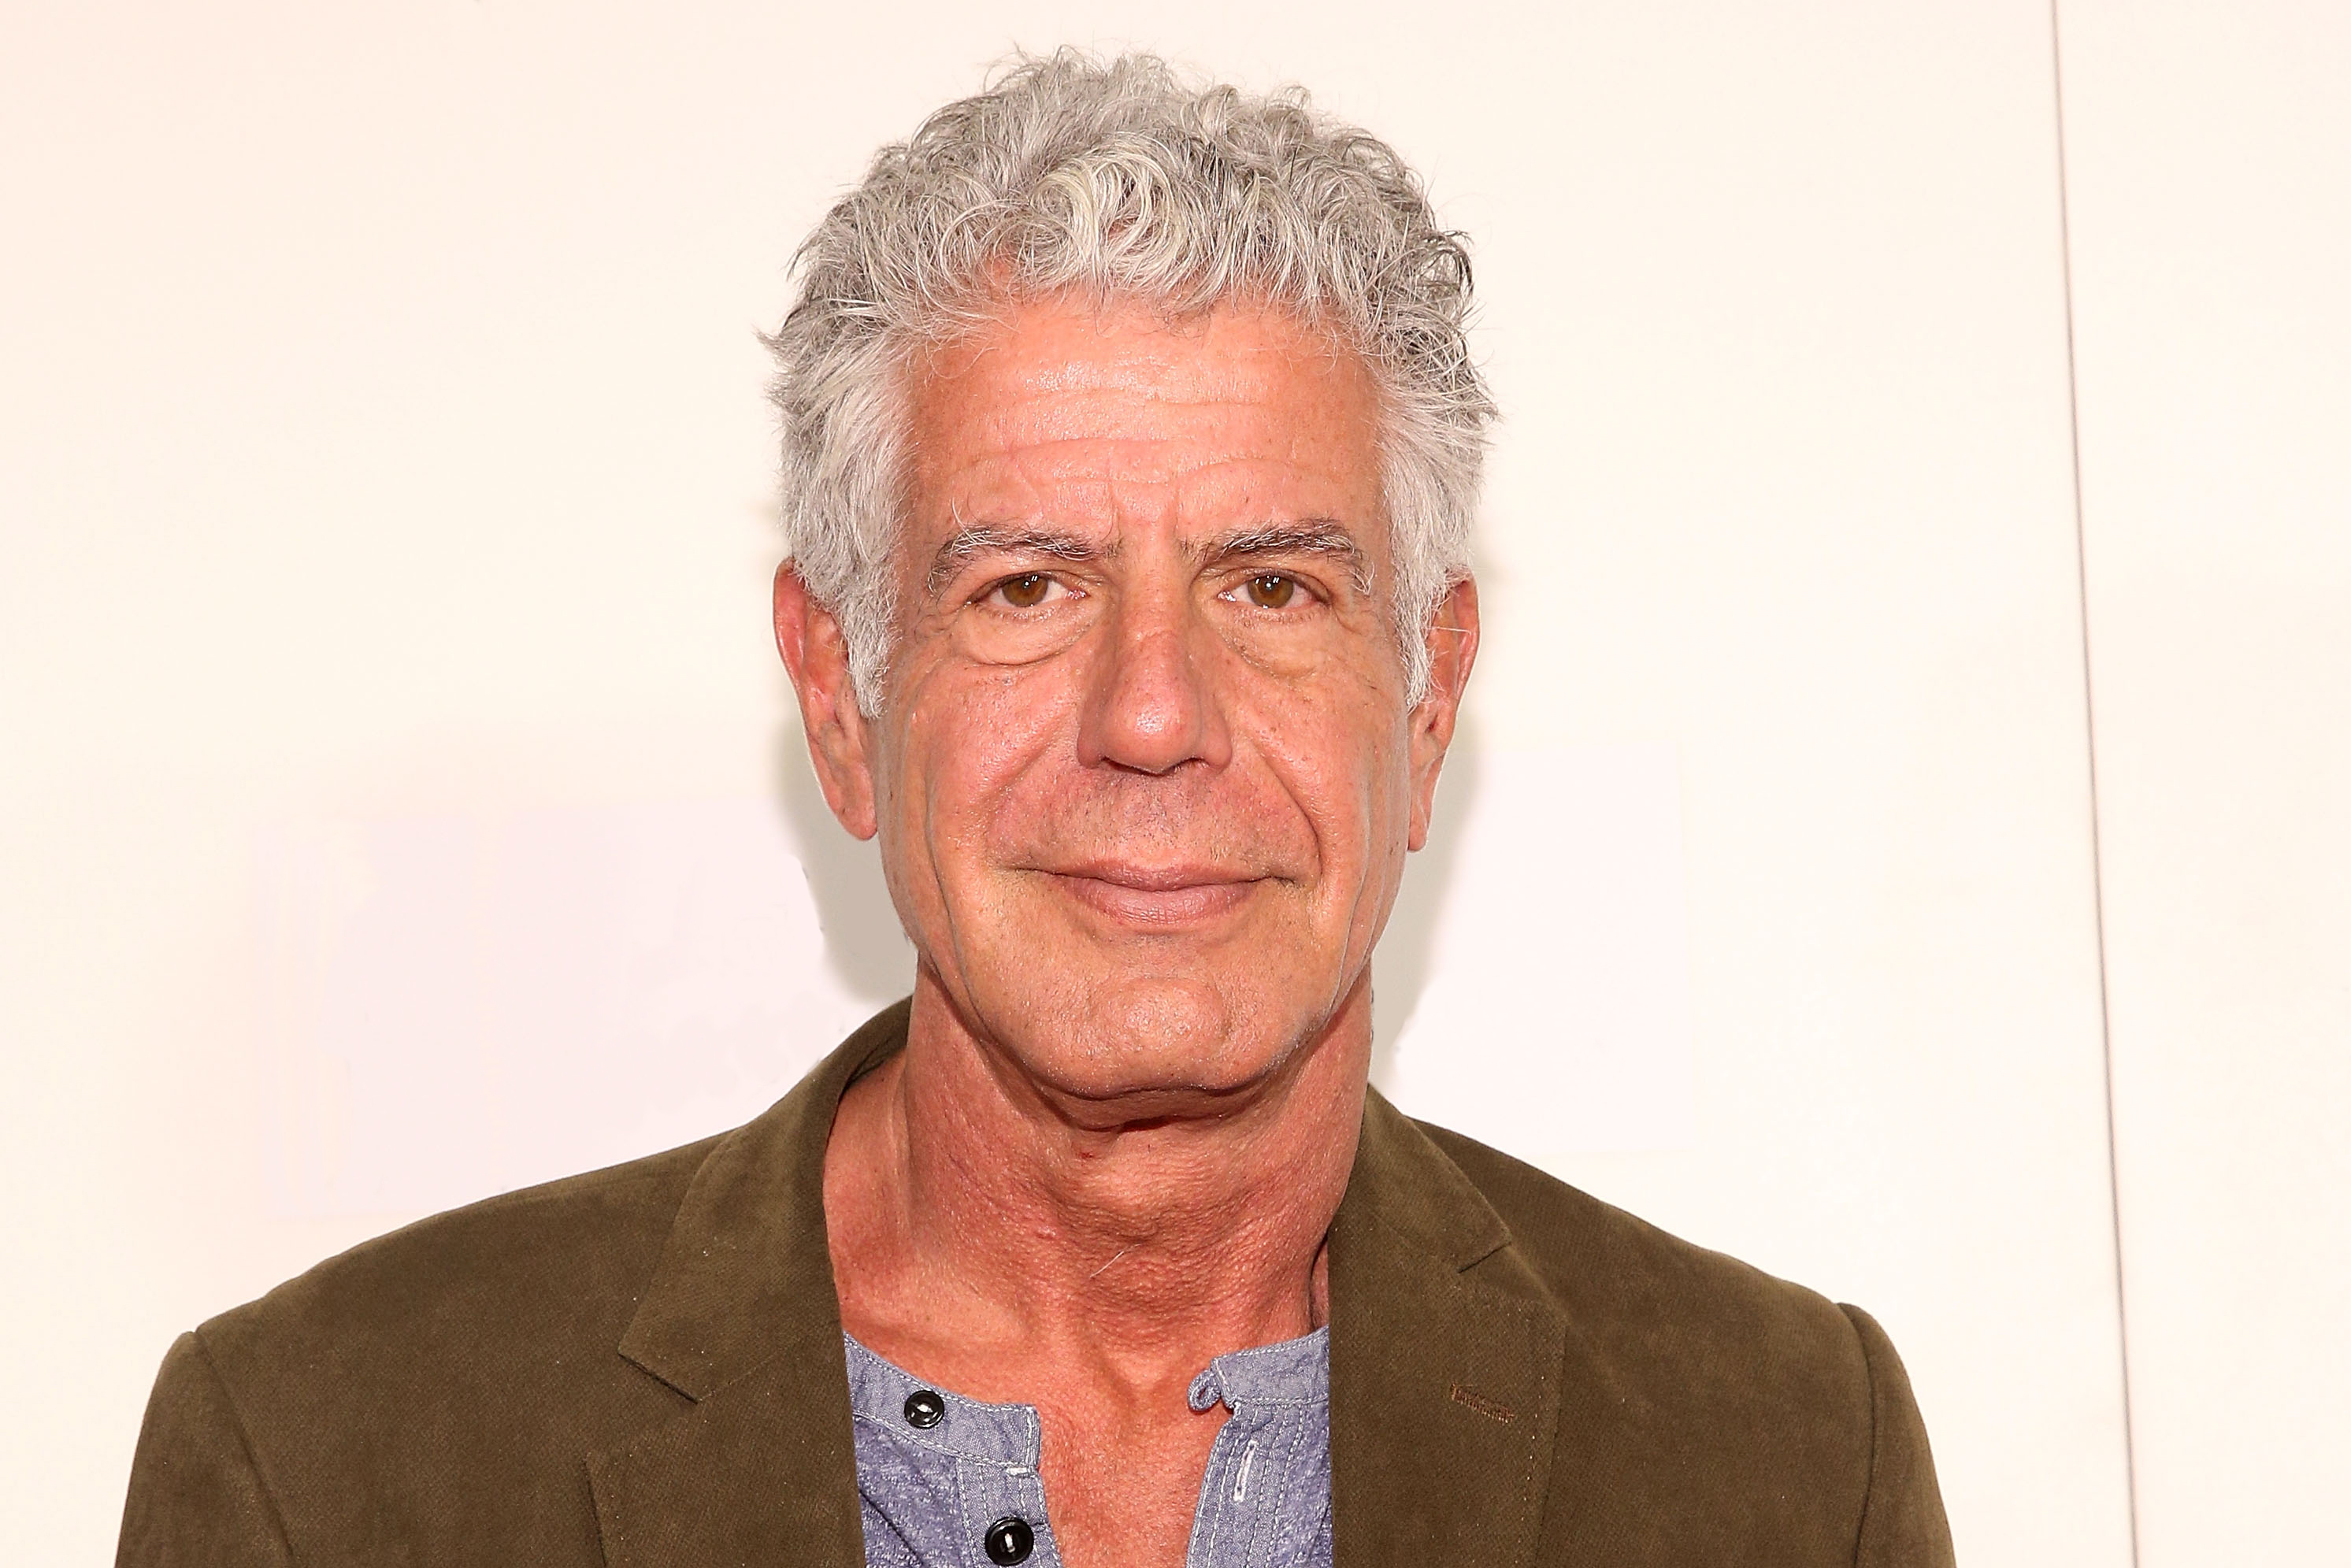 Read This Fanfic About Anthony Bourdain in Narnia | Kitchn